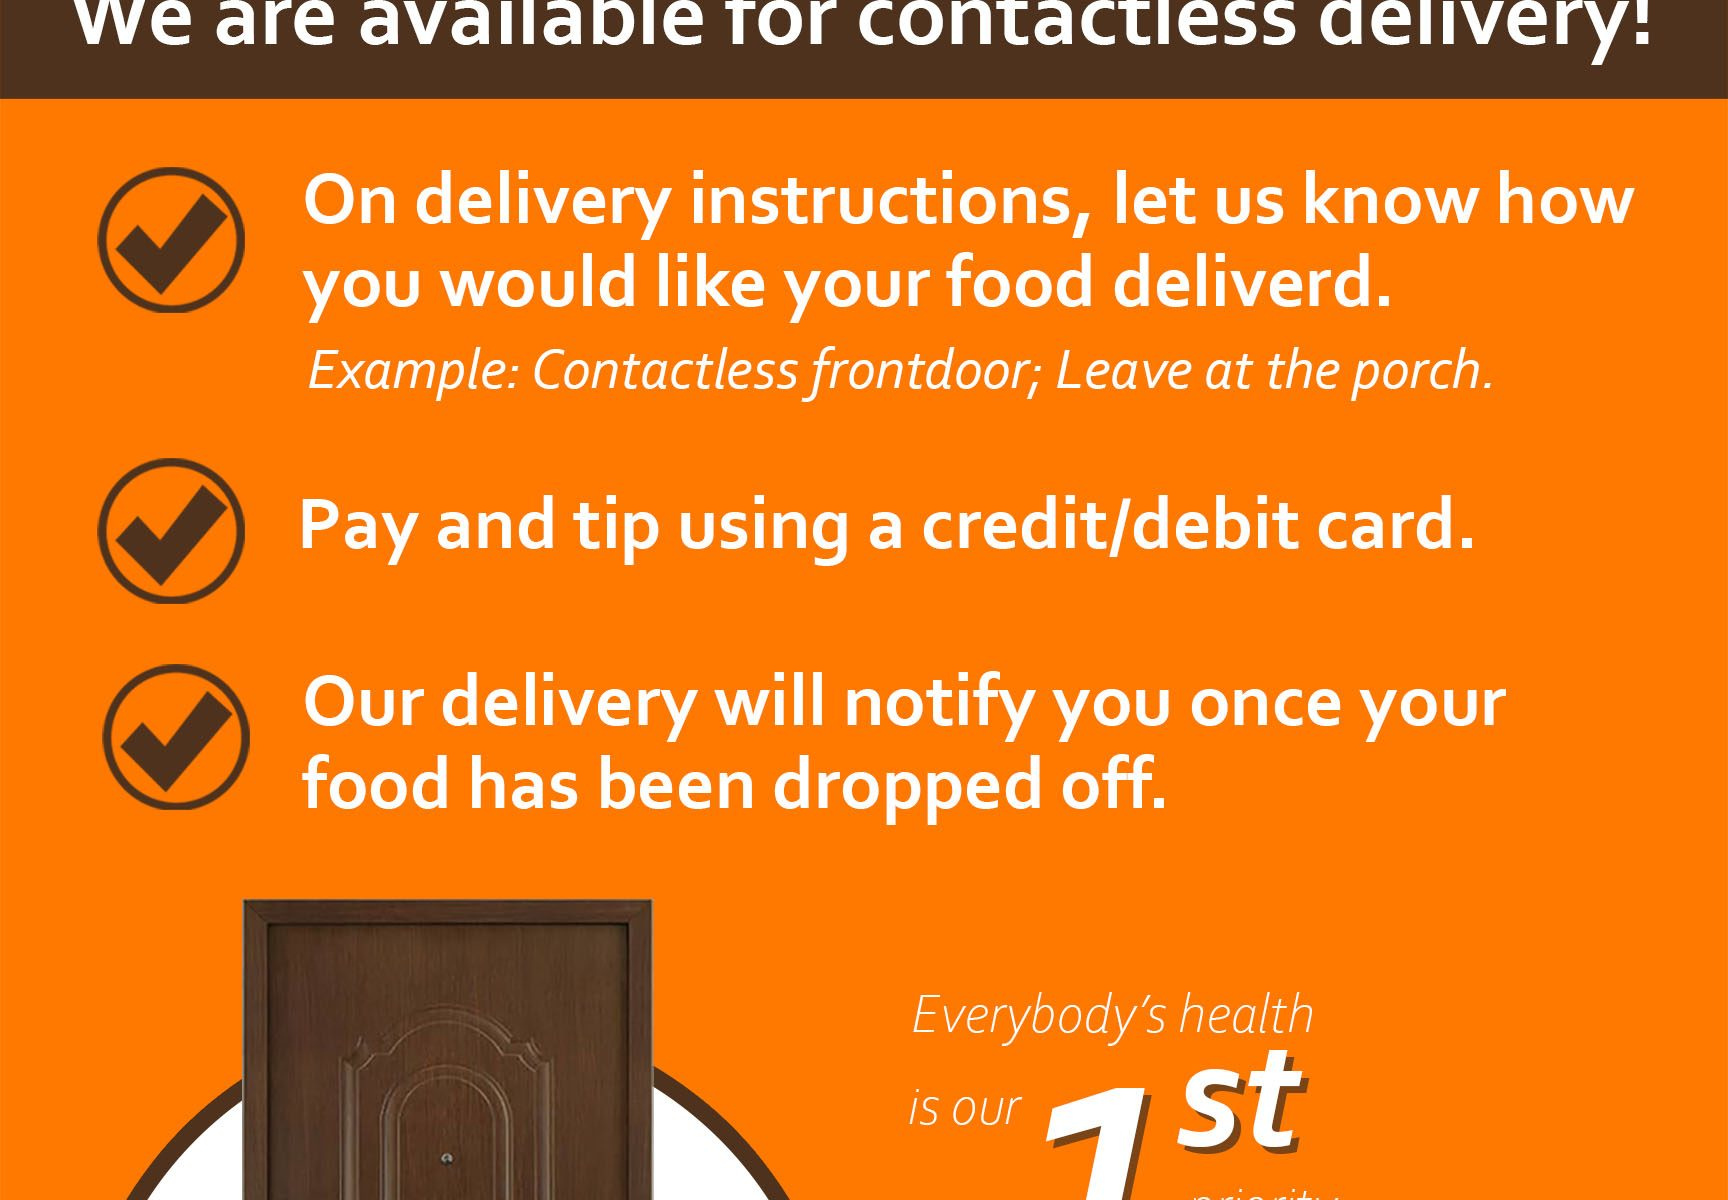 With delivery information signs that are visible and easy to read, stores and restaurants can make transactions more convenient for customers and delivery personnel as instructions and need-to-know details are made visible for all to see. These signs and banners will also help keep people safe and minimize the risks they face.